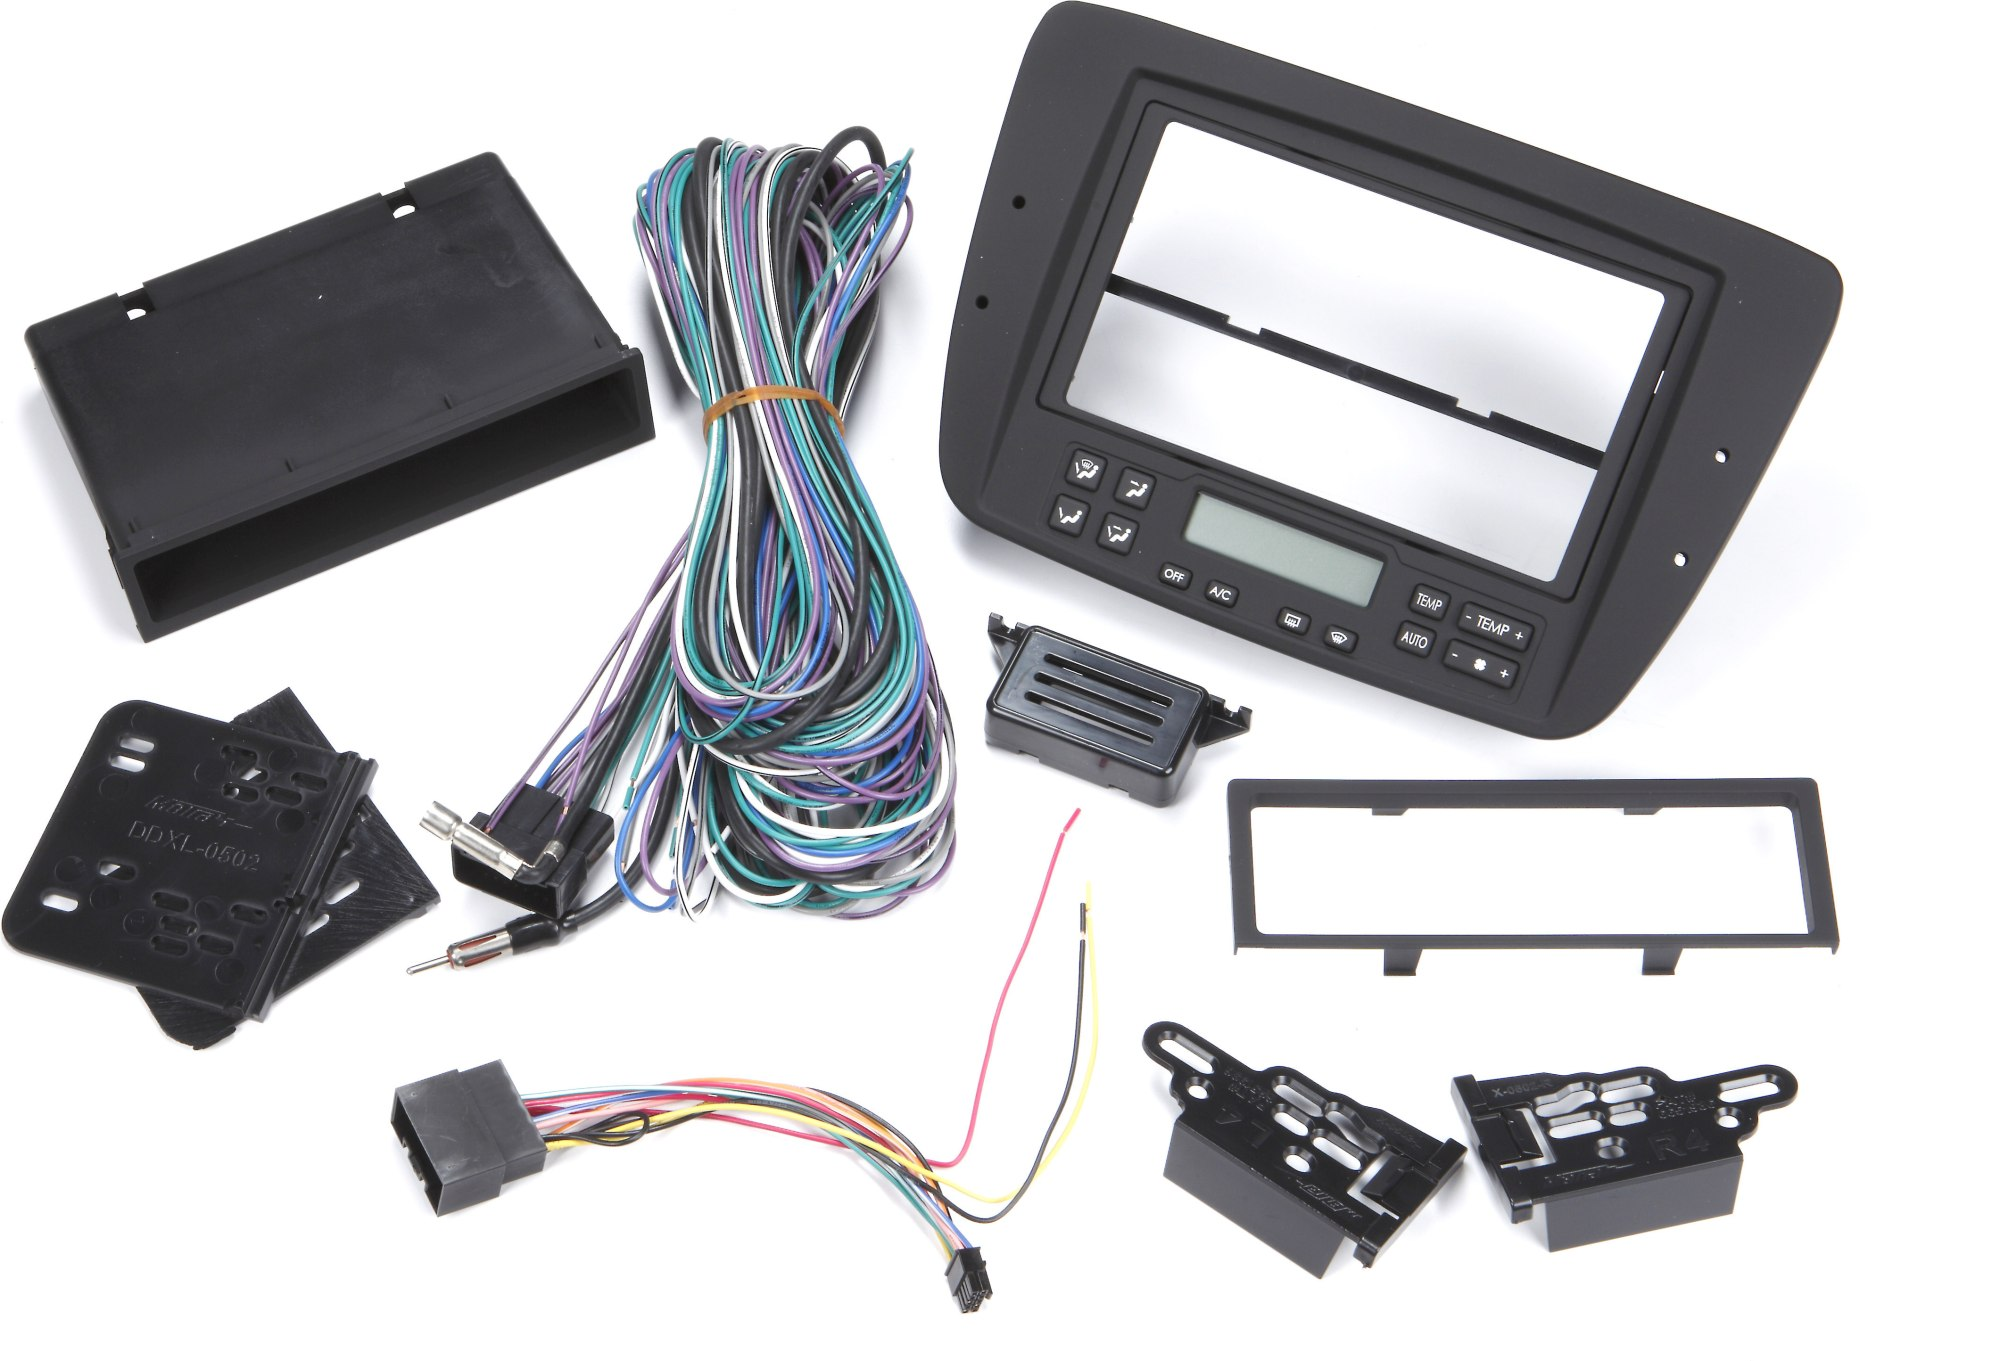 hight resolution of metra 99 5718 dash and wiring kit install and connect a new single din or double din car stereo in a 2000 03 ford taurus or mercury sable with electronic